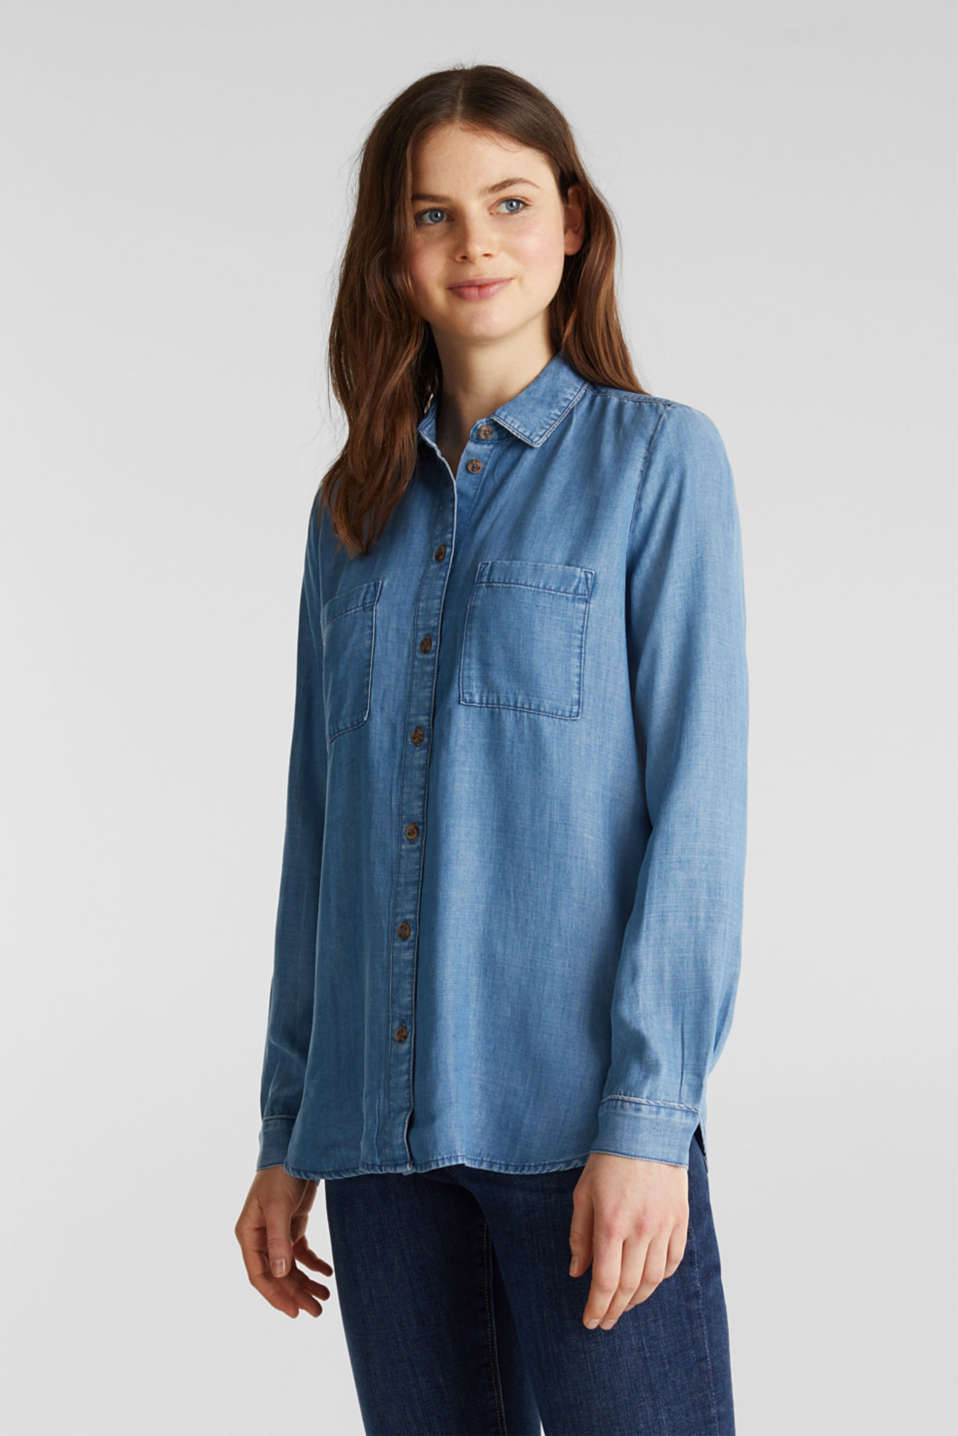 Esprit - En TENCEL™ : la blouse au look denim